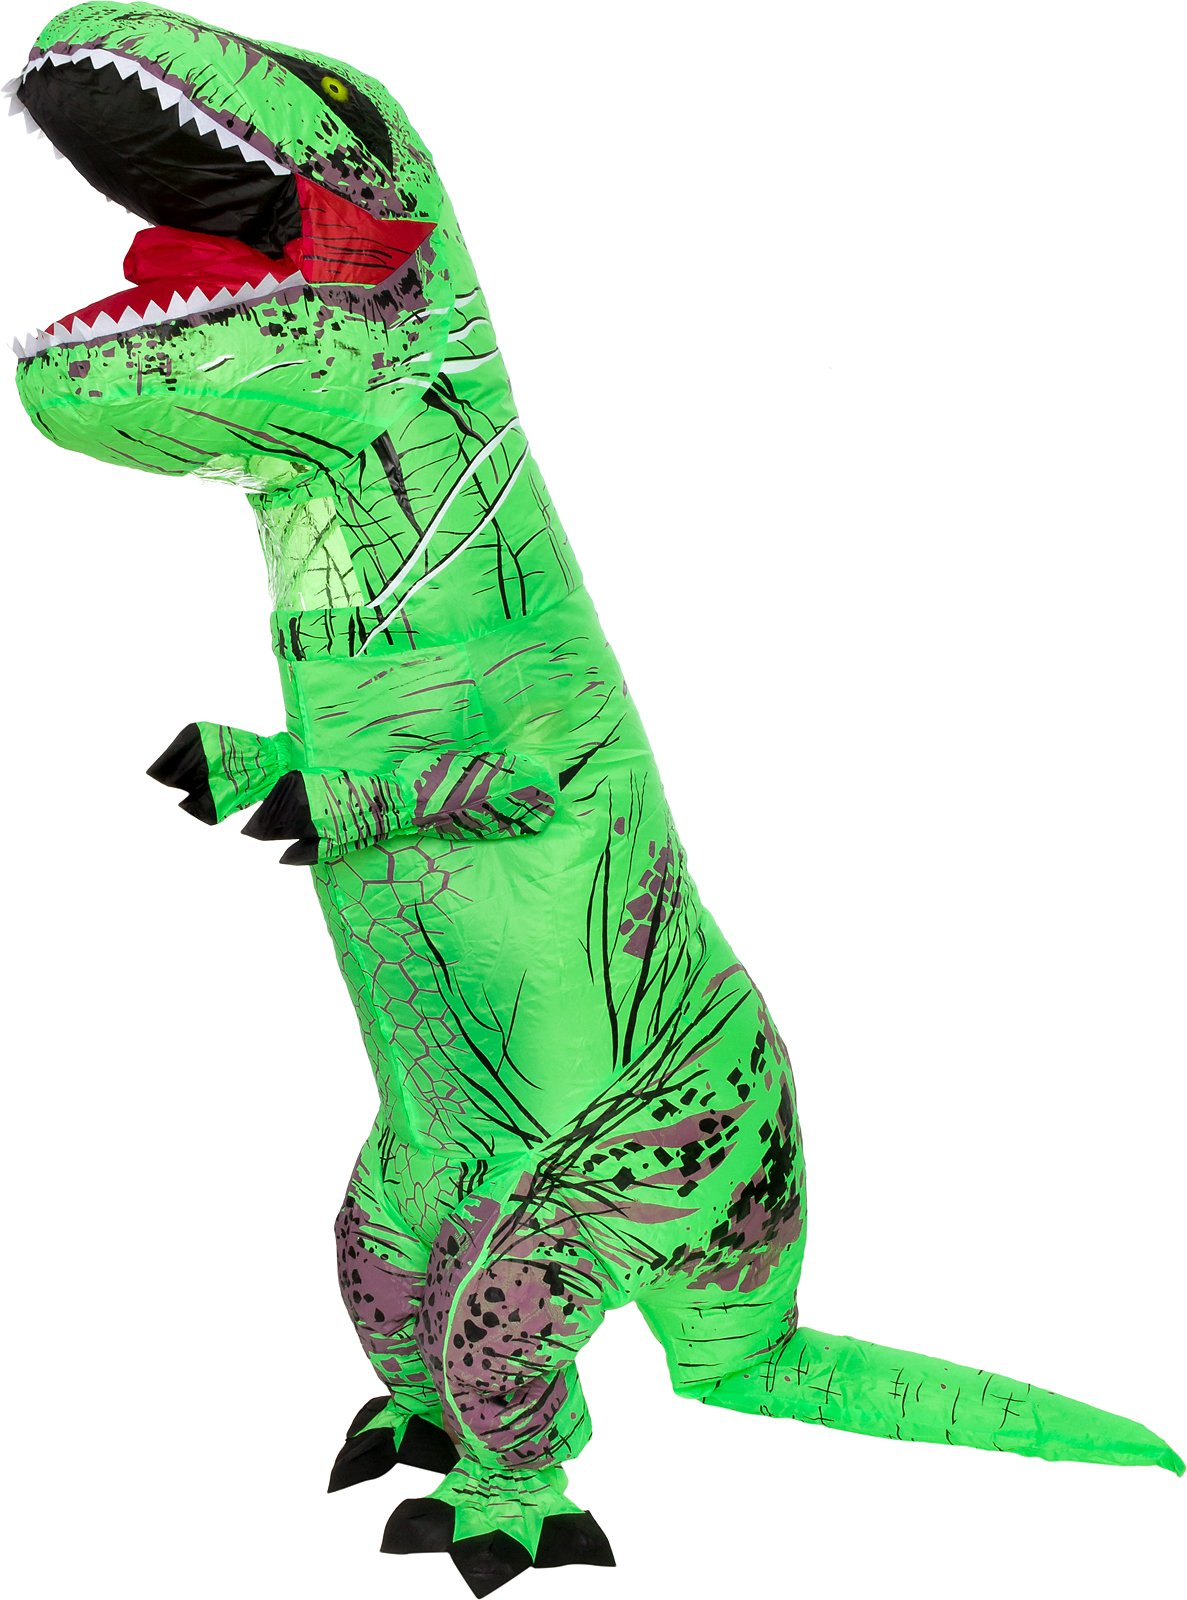 Splurge Worthy Toys and Games Inflatable Dinosaur Costume - Adult Giant Jurassic T-Rex Blow up Halloween Costume by (Green)